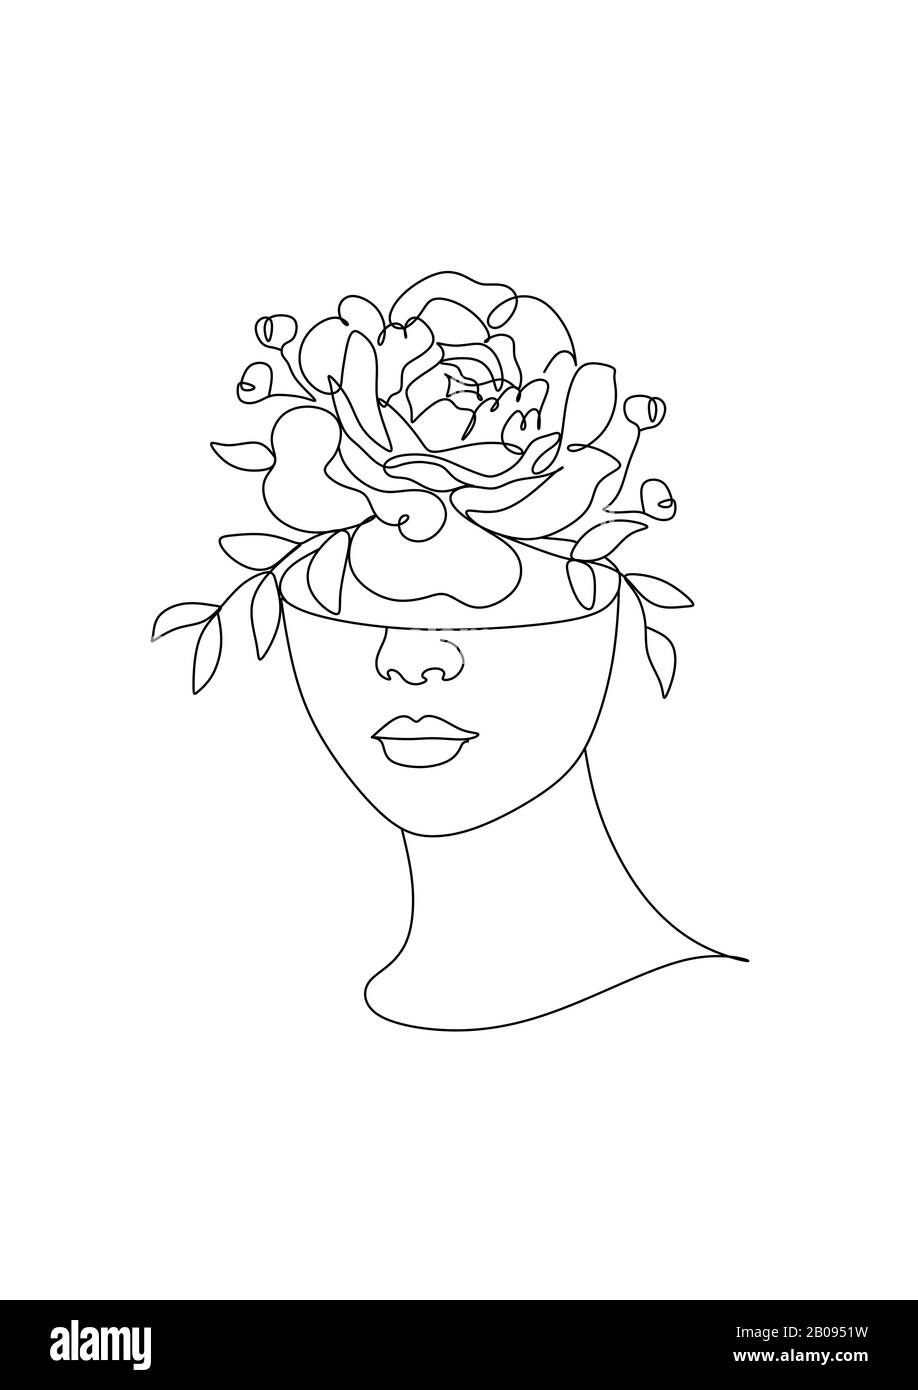 Girl With Flower Head Drawing : flower, drawing, Woman, Nature, Drawing., Leaves, Vector., Nature., Earth, Abstract, Flowers, Vector, Portrait, Minimalist, Stock, Photo, Alamy